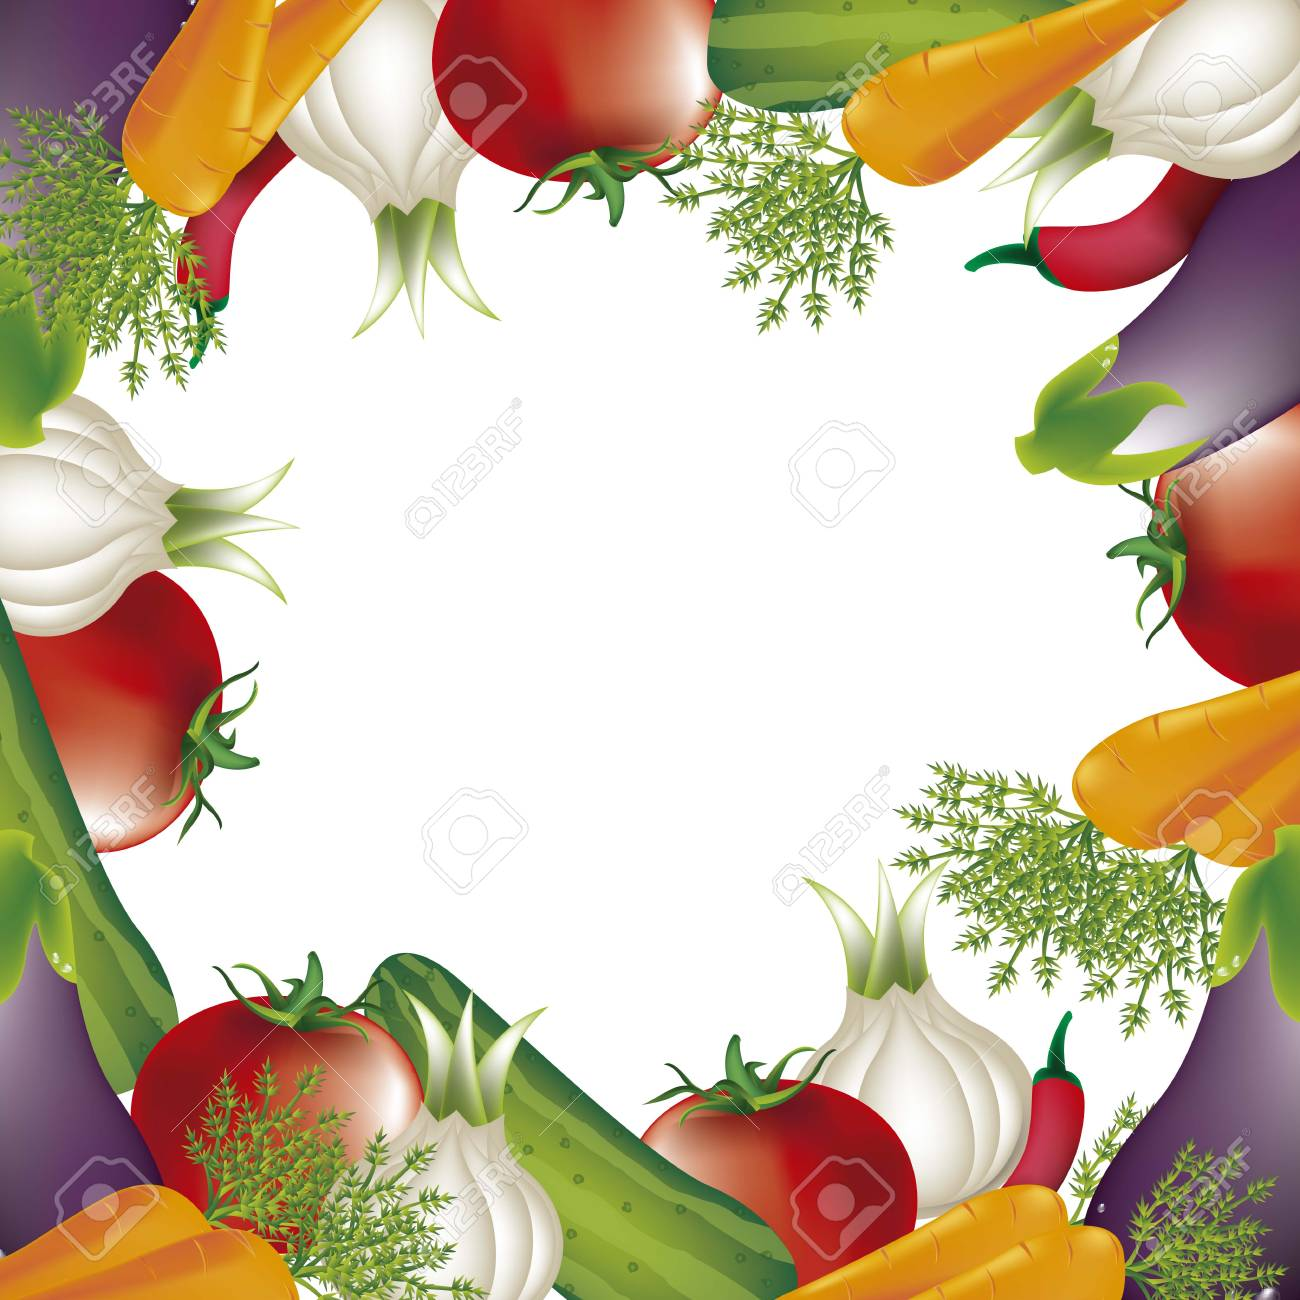 vegetables over white background. vector illlustration Stock Vector - 14944504